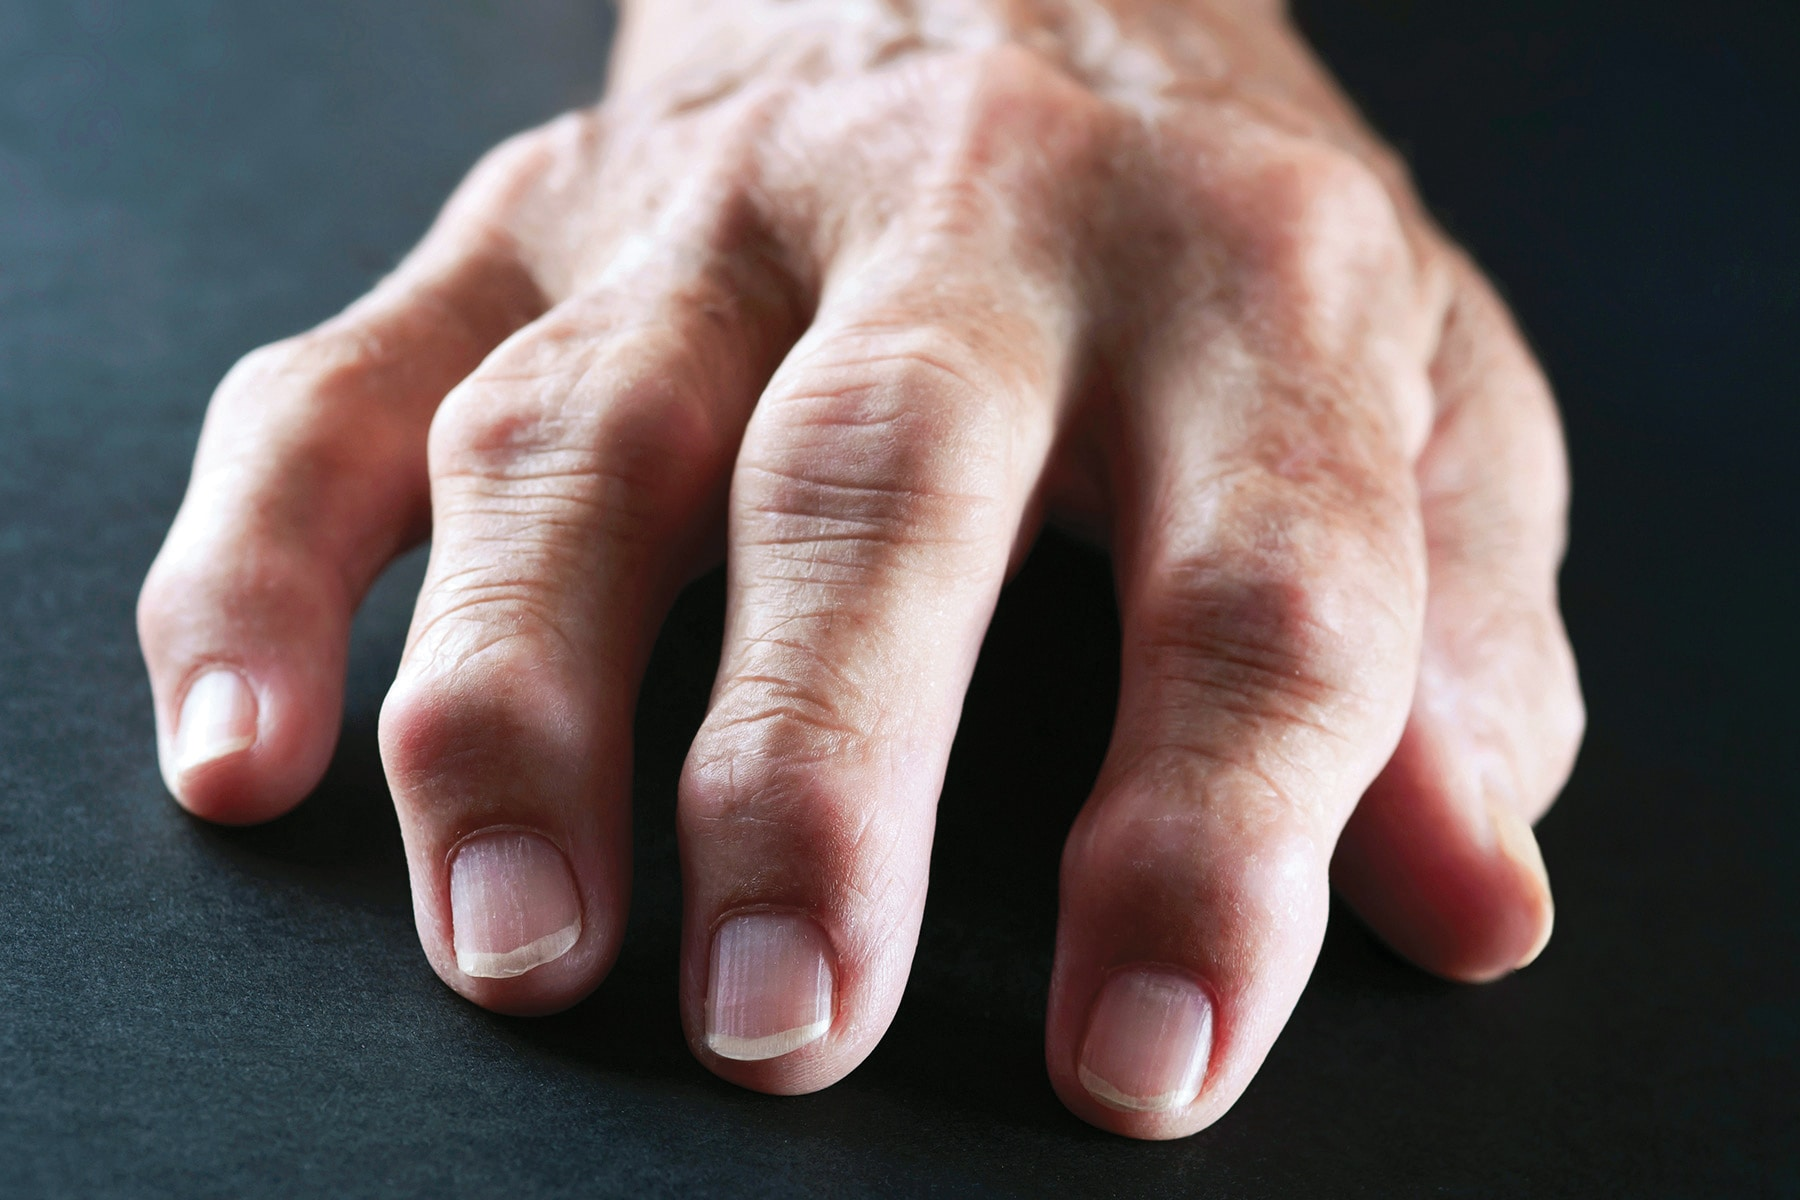 Types of Arthritis and Ways to Manage the Condition